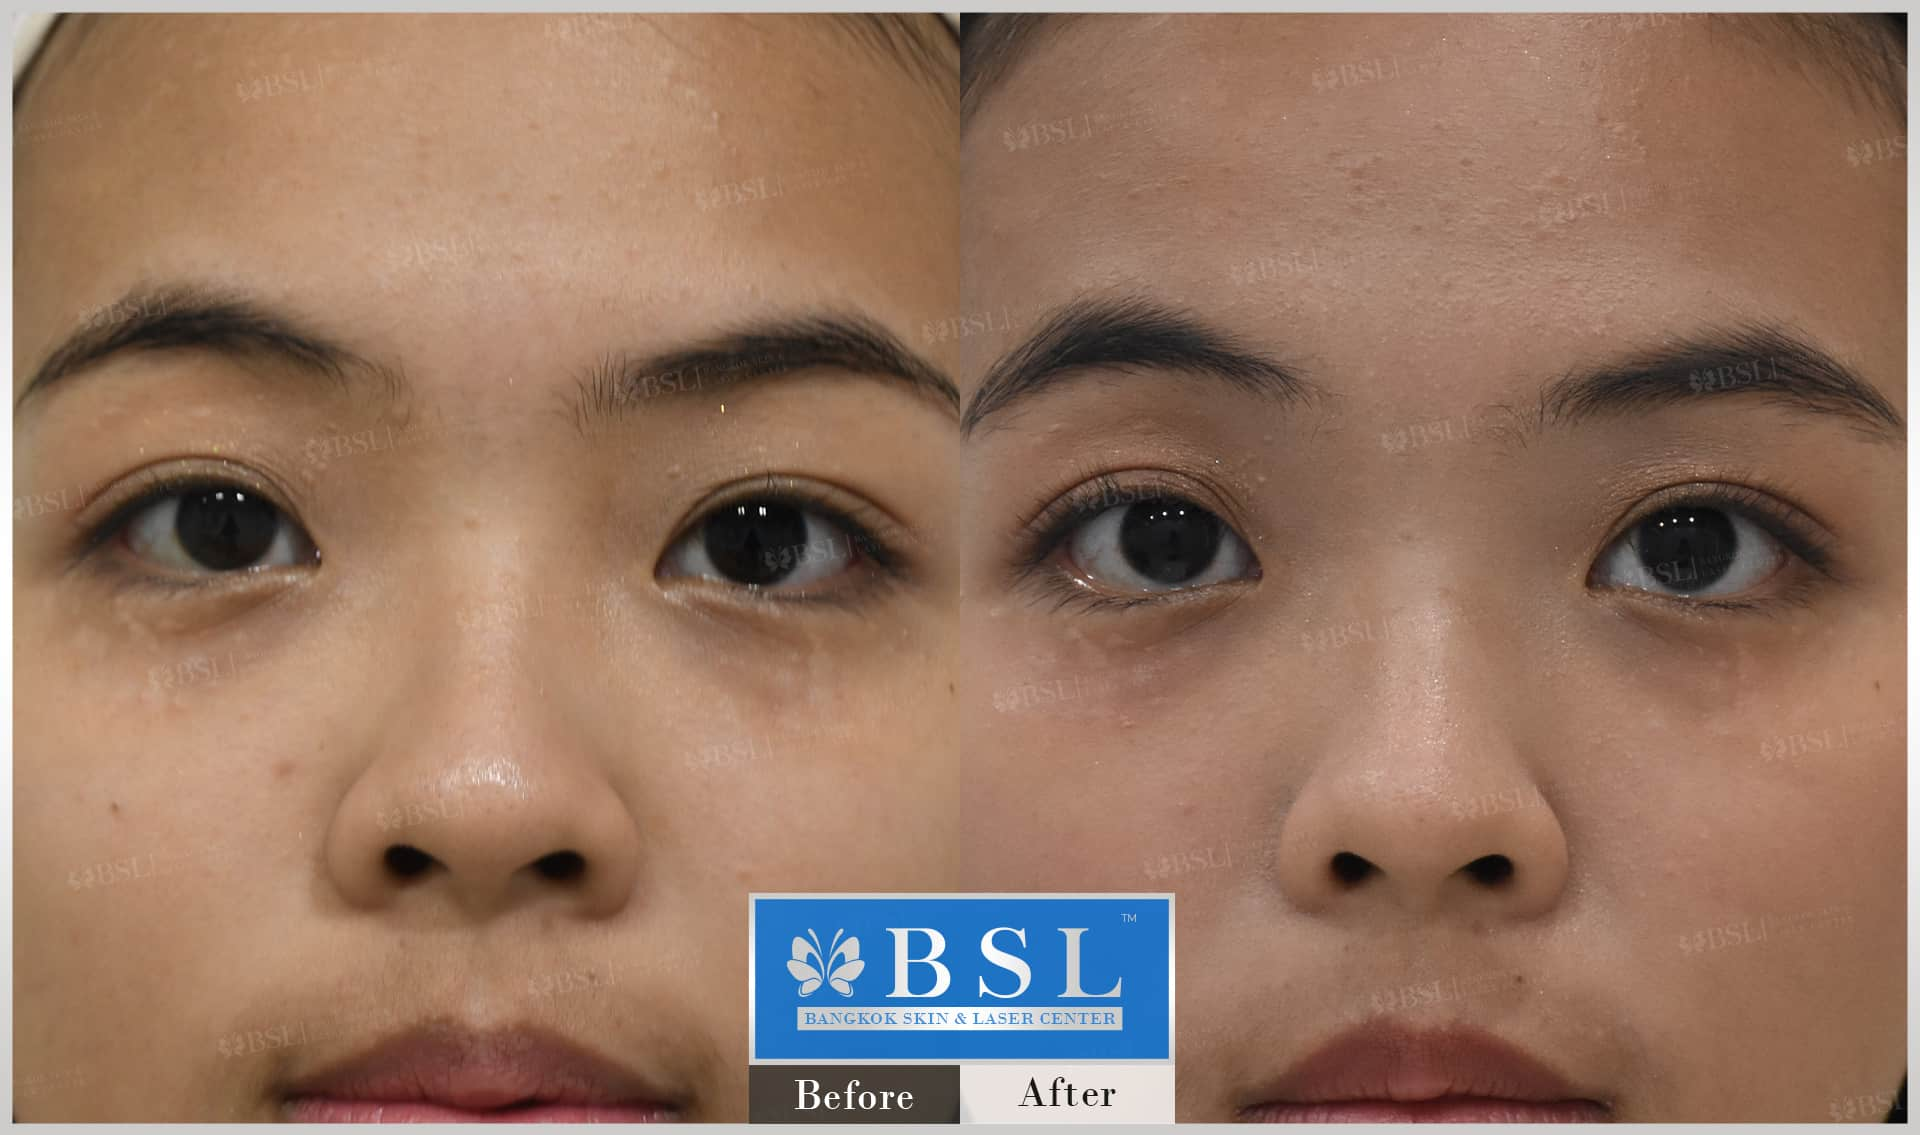 before-after-results-scar-treatment-017